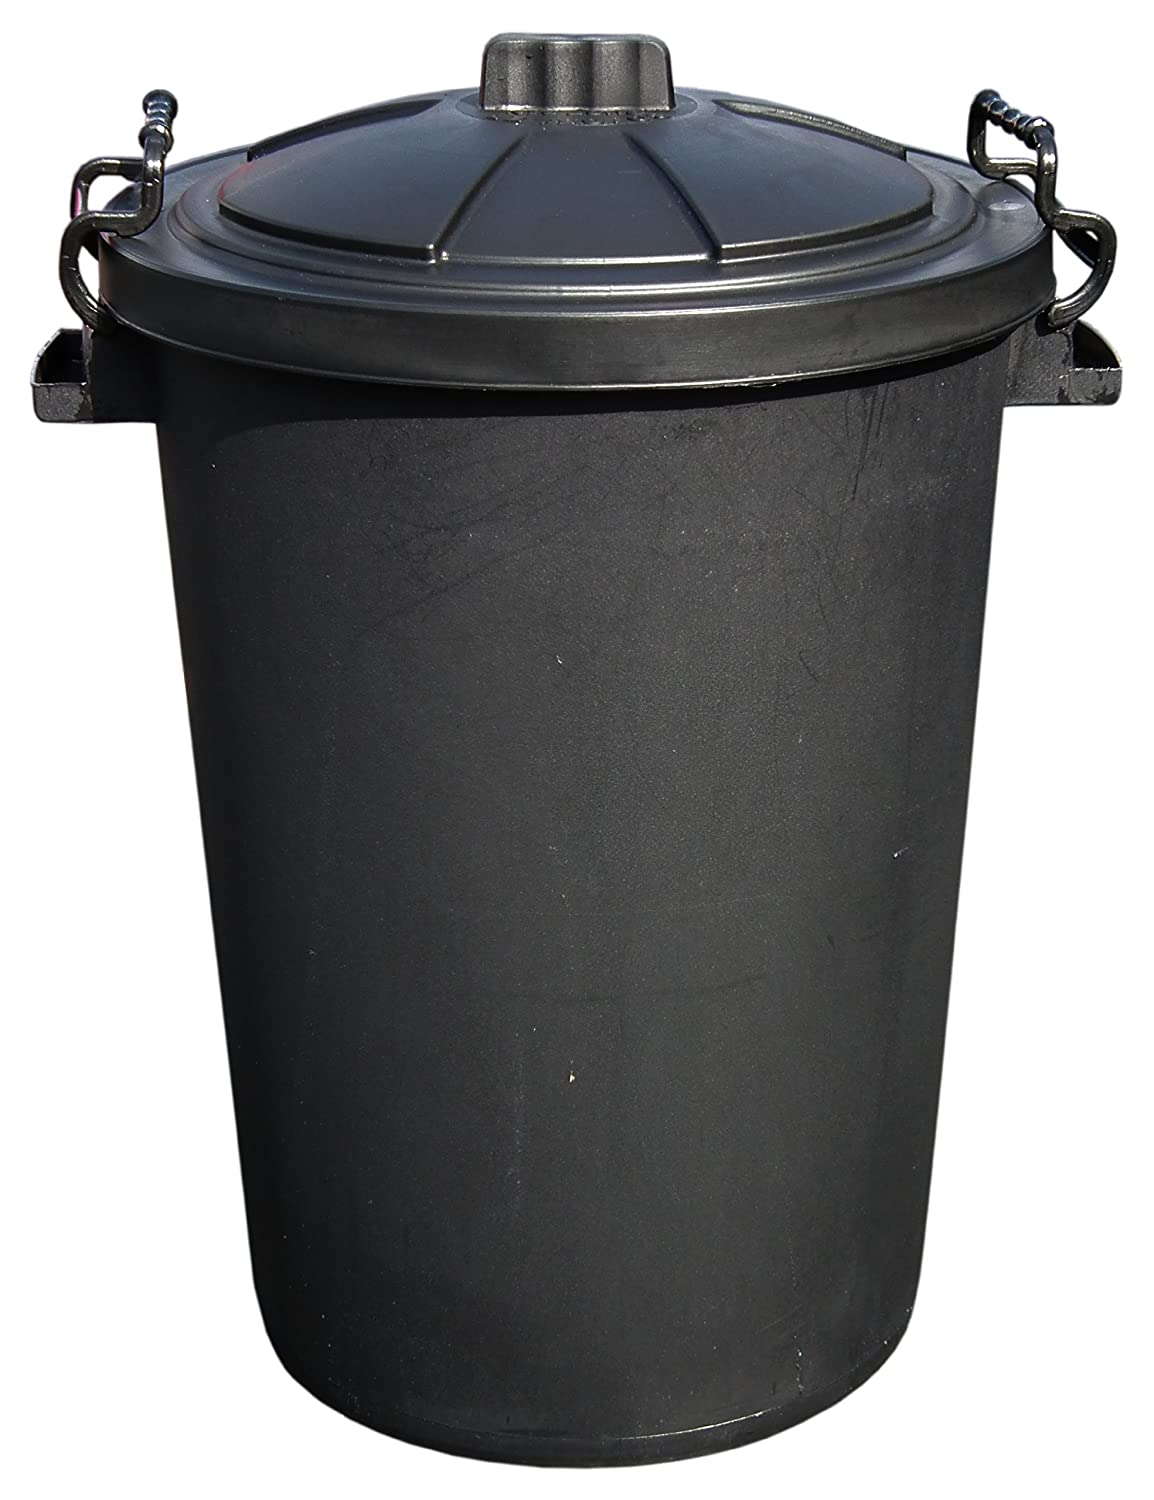 80L Capacity Outdoor Waterproof Garbage/Rubbish Bin With Lockable Lid KD & Jay